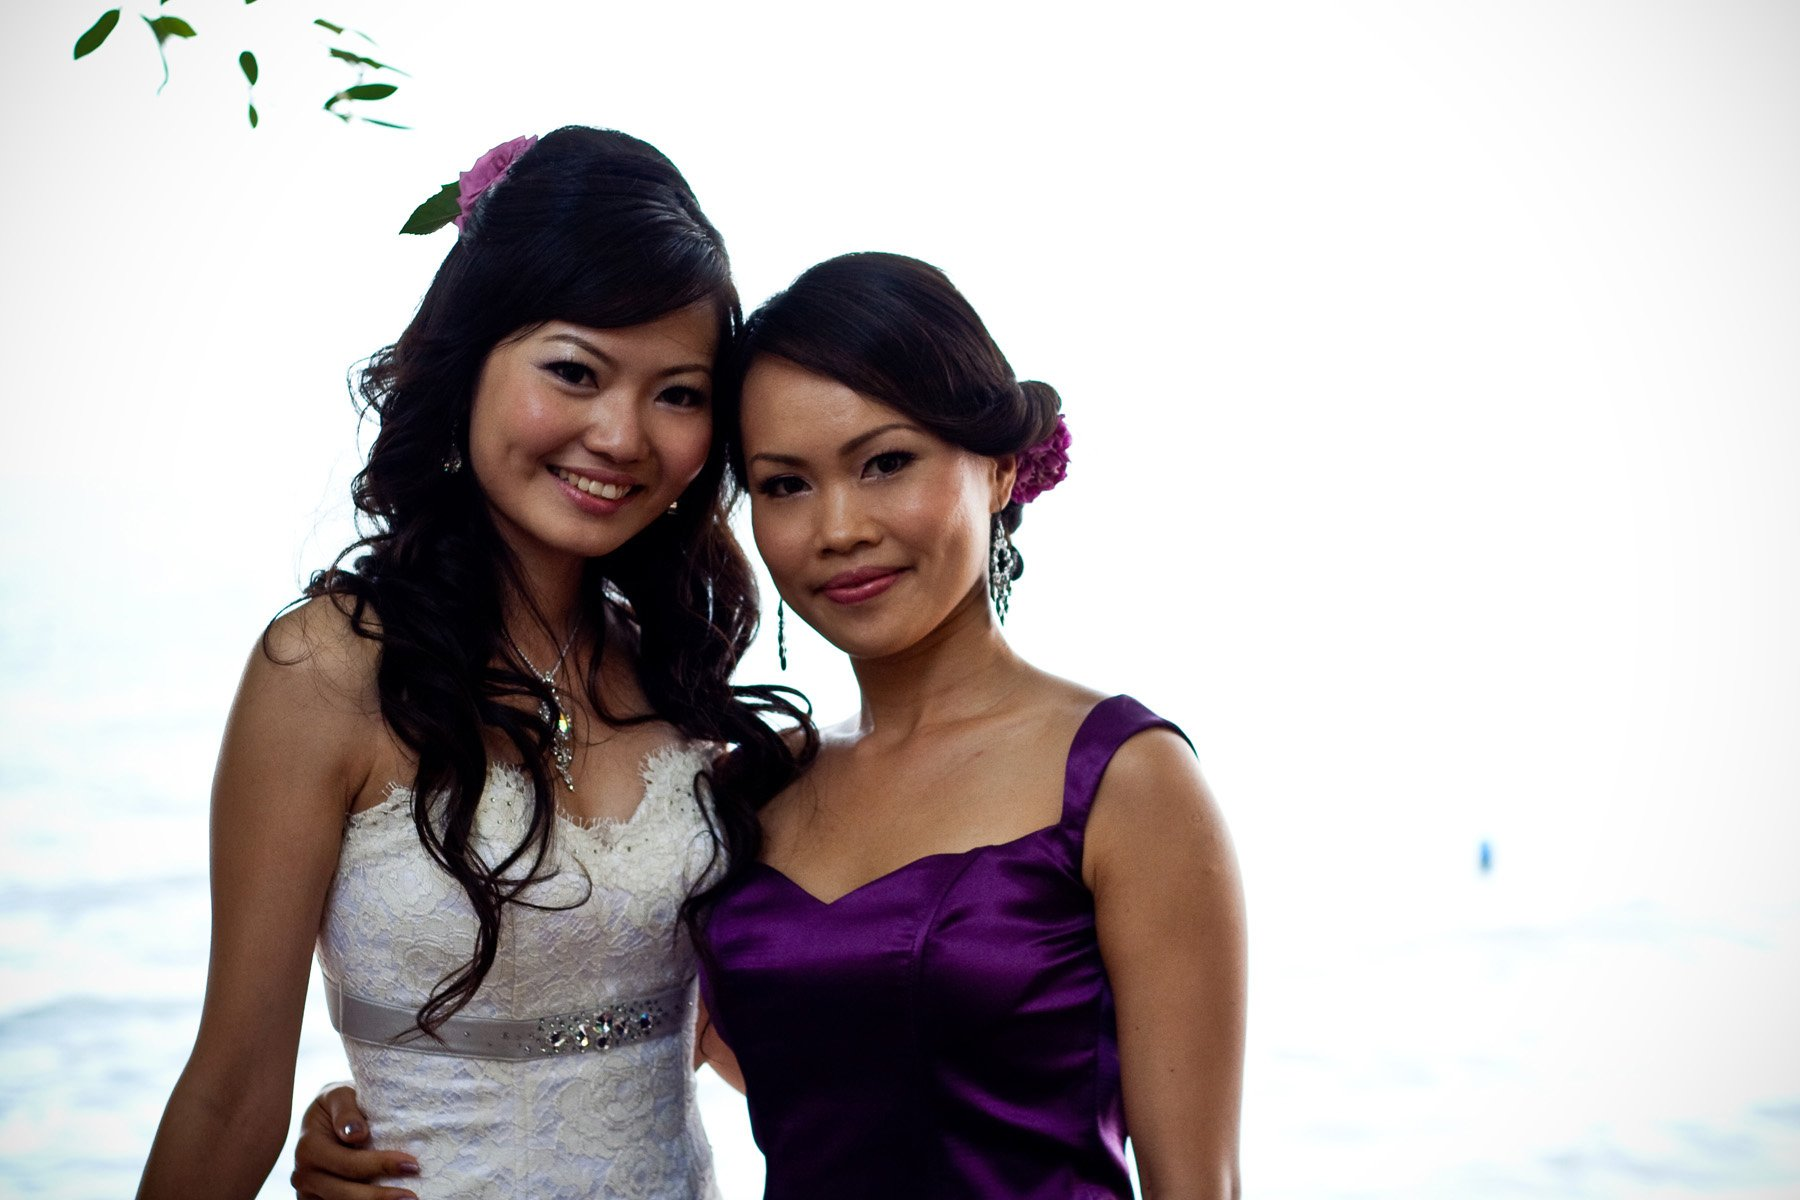 Celeste and Jasmine as her maid of honour